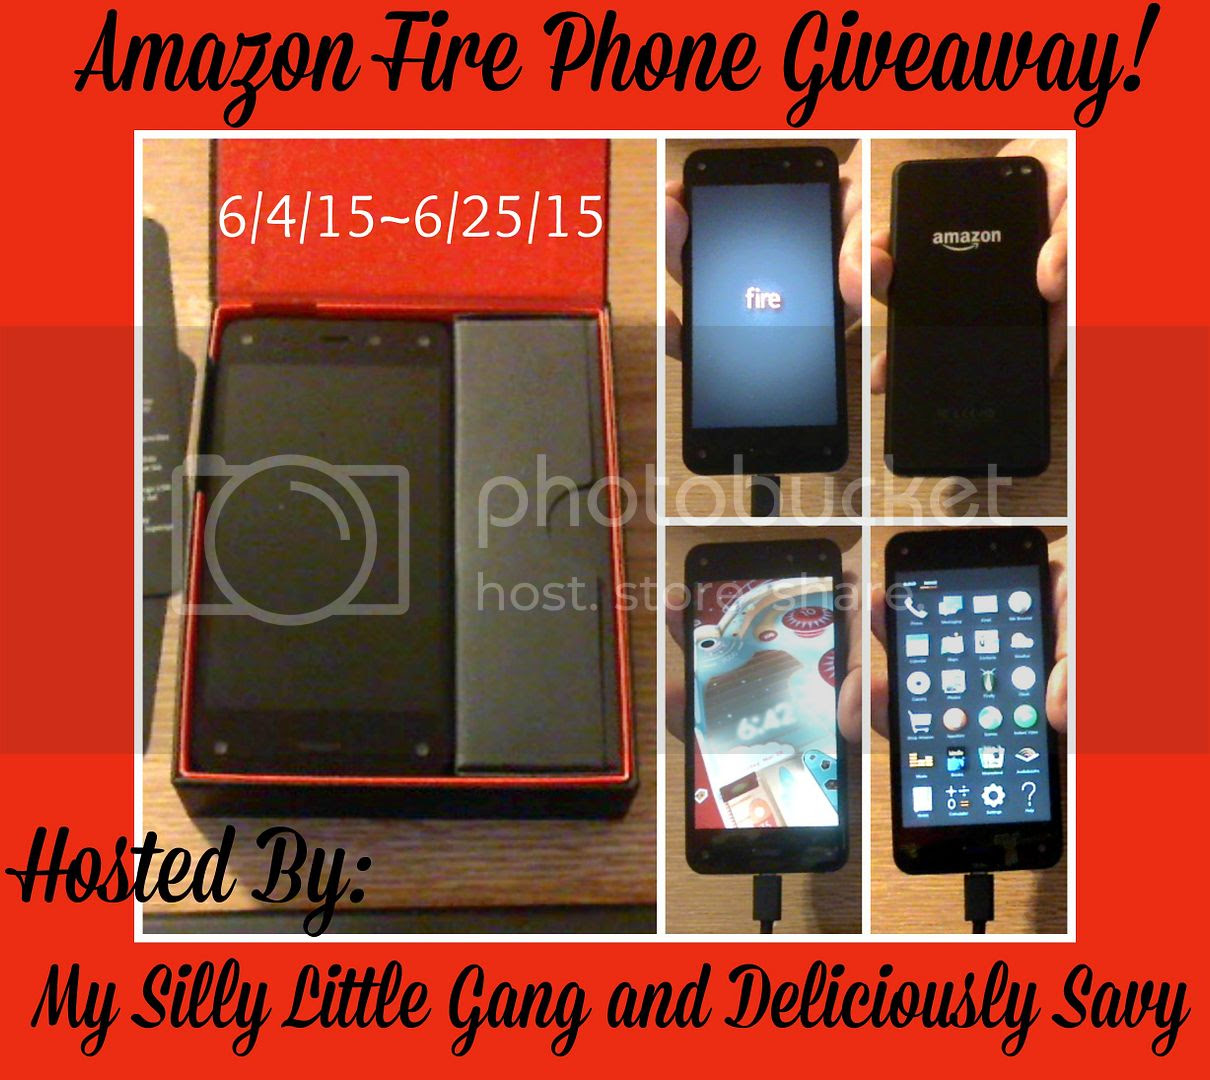 Enter the Amazon Fire Phone Giveaway. Ends 6/25